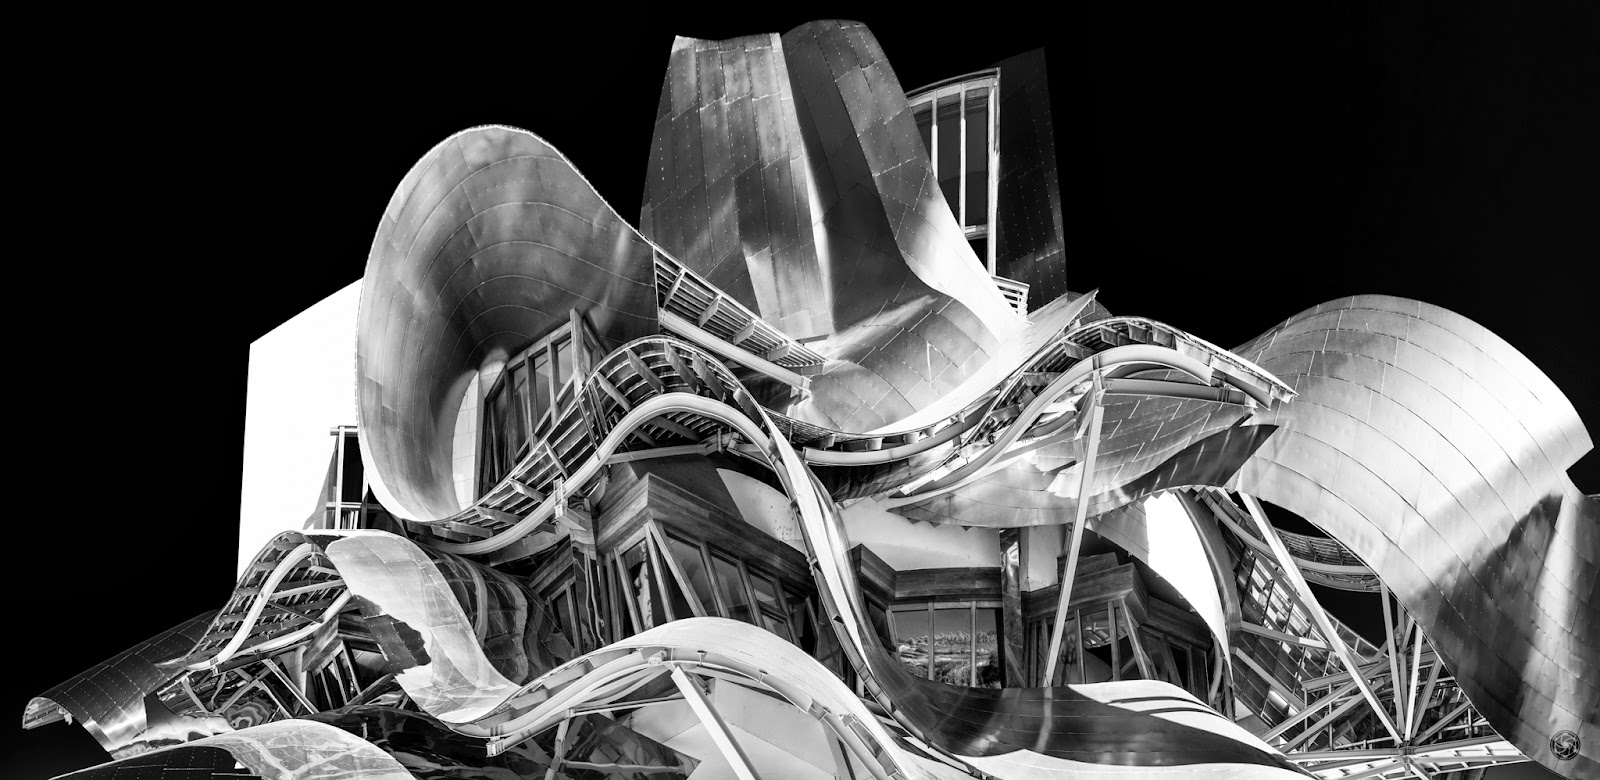 Esencia de Gehry :: Panorámica 7 x Canon EOS 5D MkIII | ISO100 | Canon 17-40 @40mm | f/7.1 | 1/100s